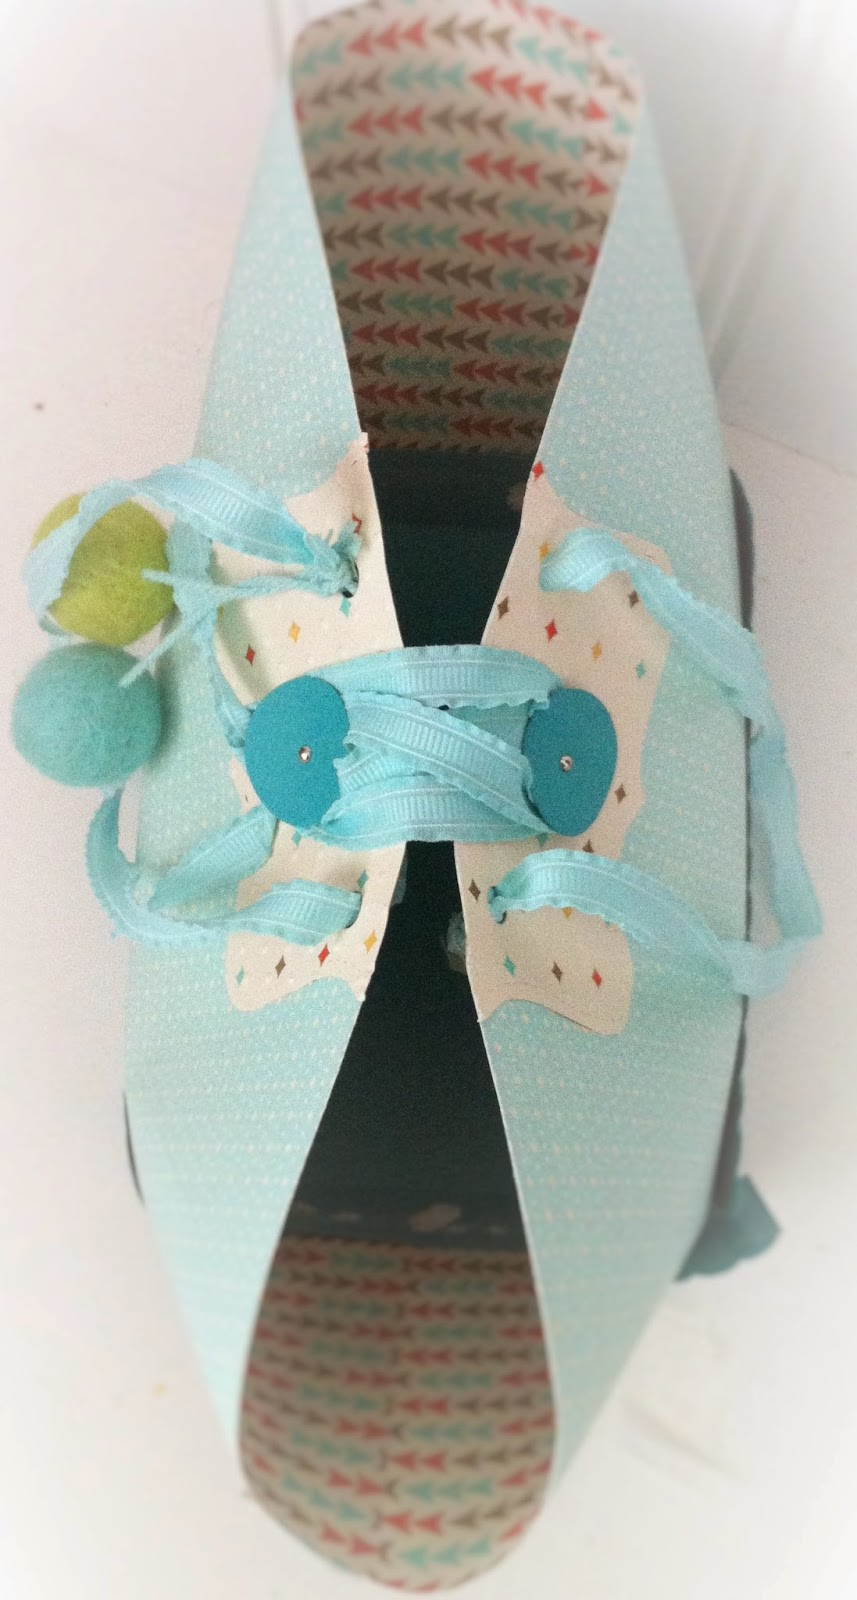 How to make a handbag size paper gift bag by Lisa Barton Vintage Celebrations